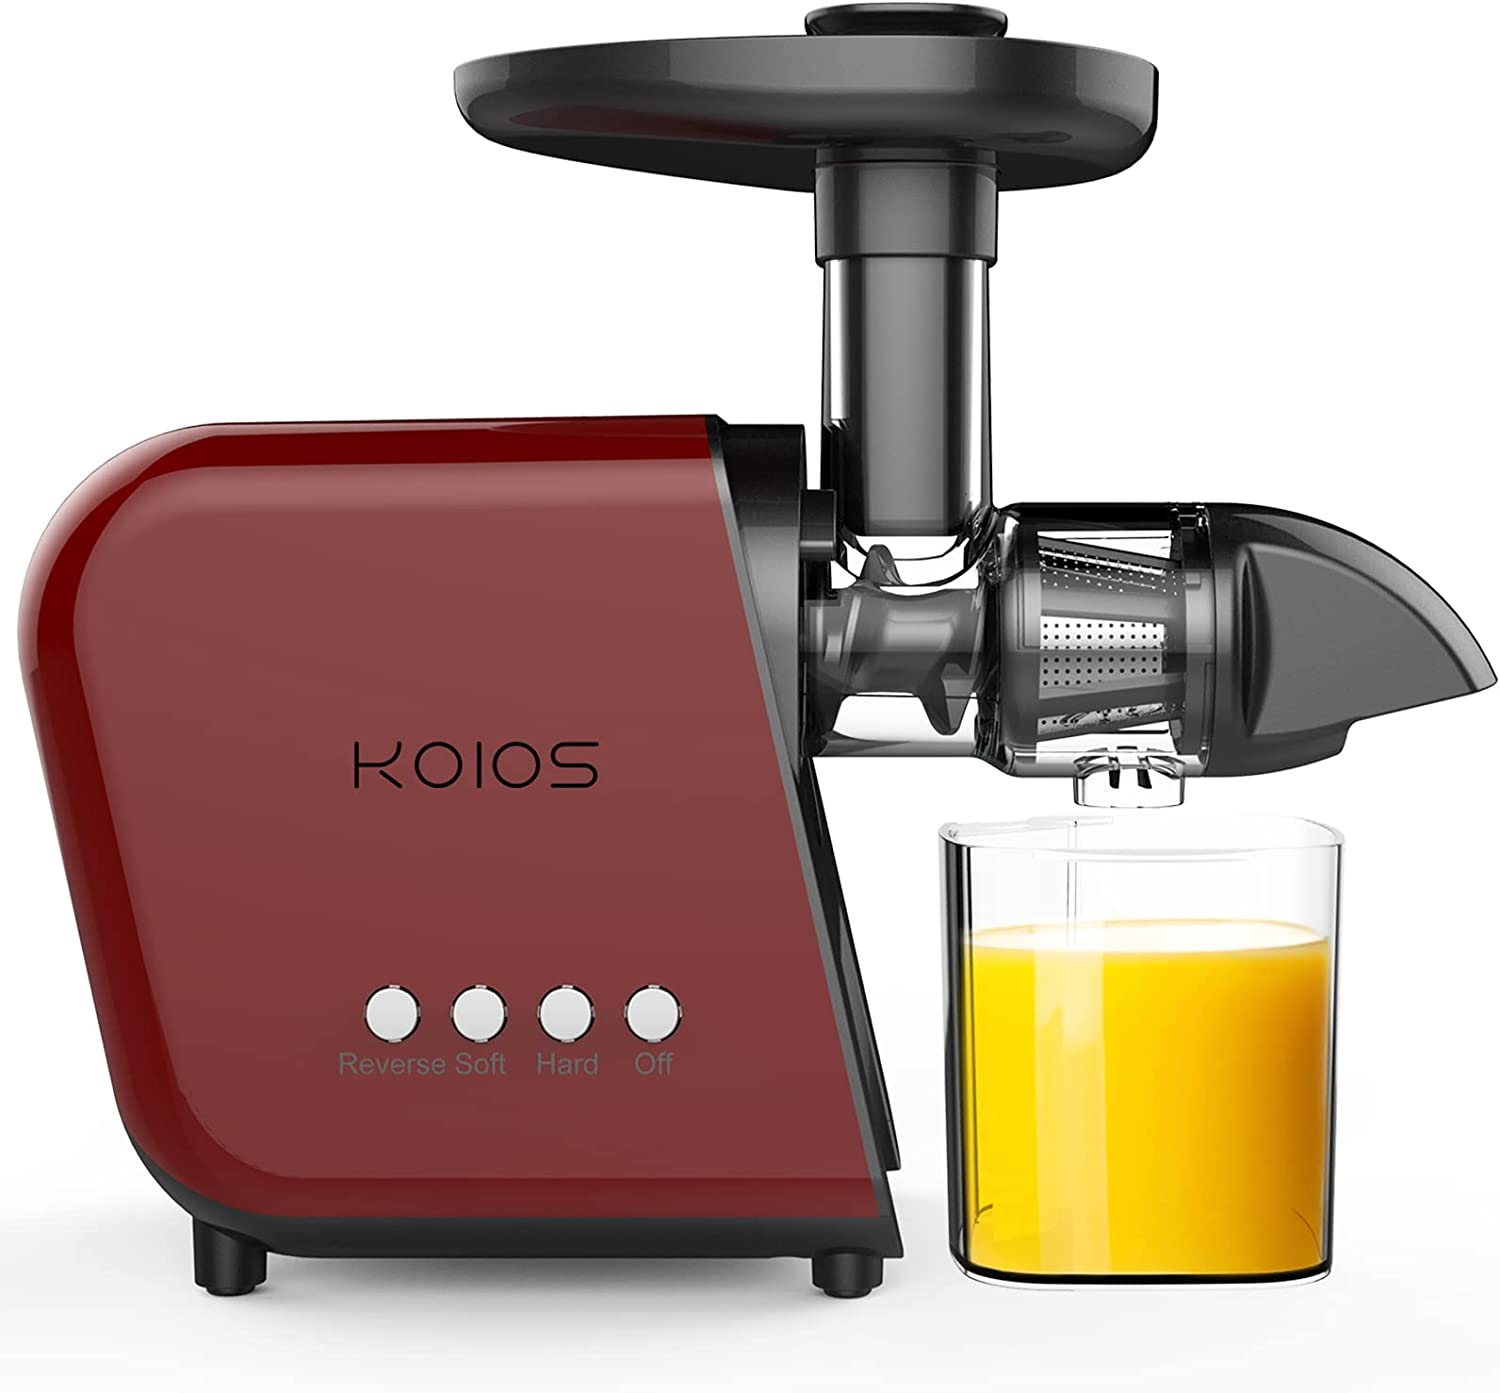 KOIOS Juicer Machine, Slow Masticating Juicer Vegetable and Fruit Easy to Clean Cold Press Juicer with Quiet Motor & Reverse Function   BPA-Free